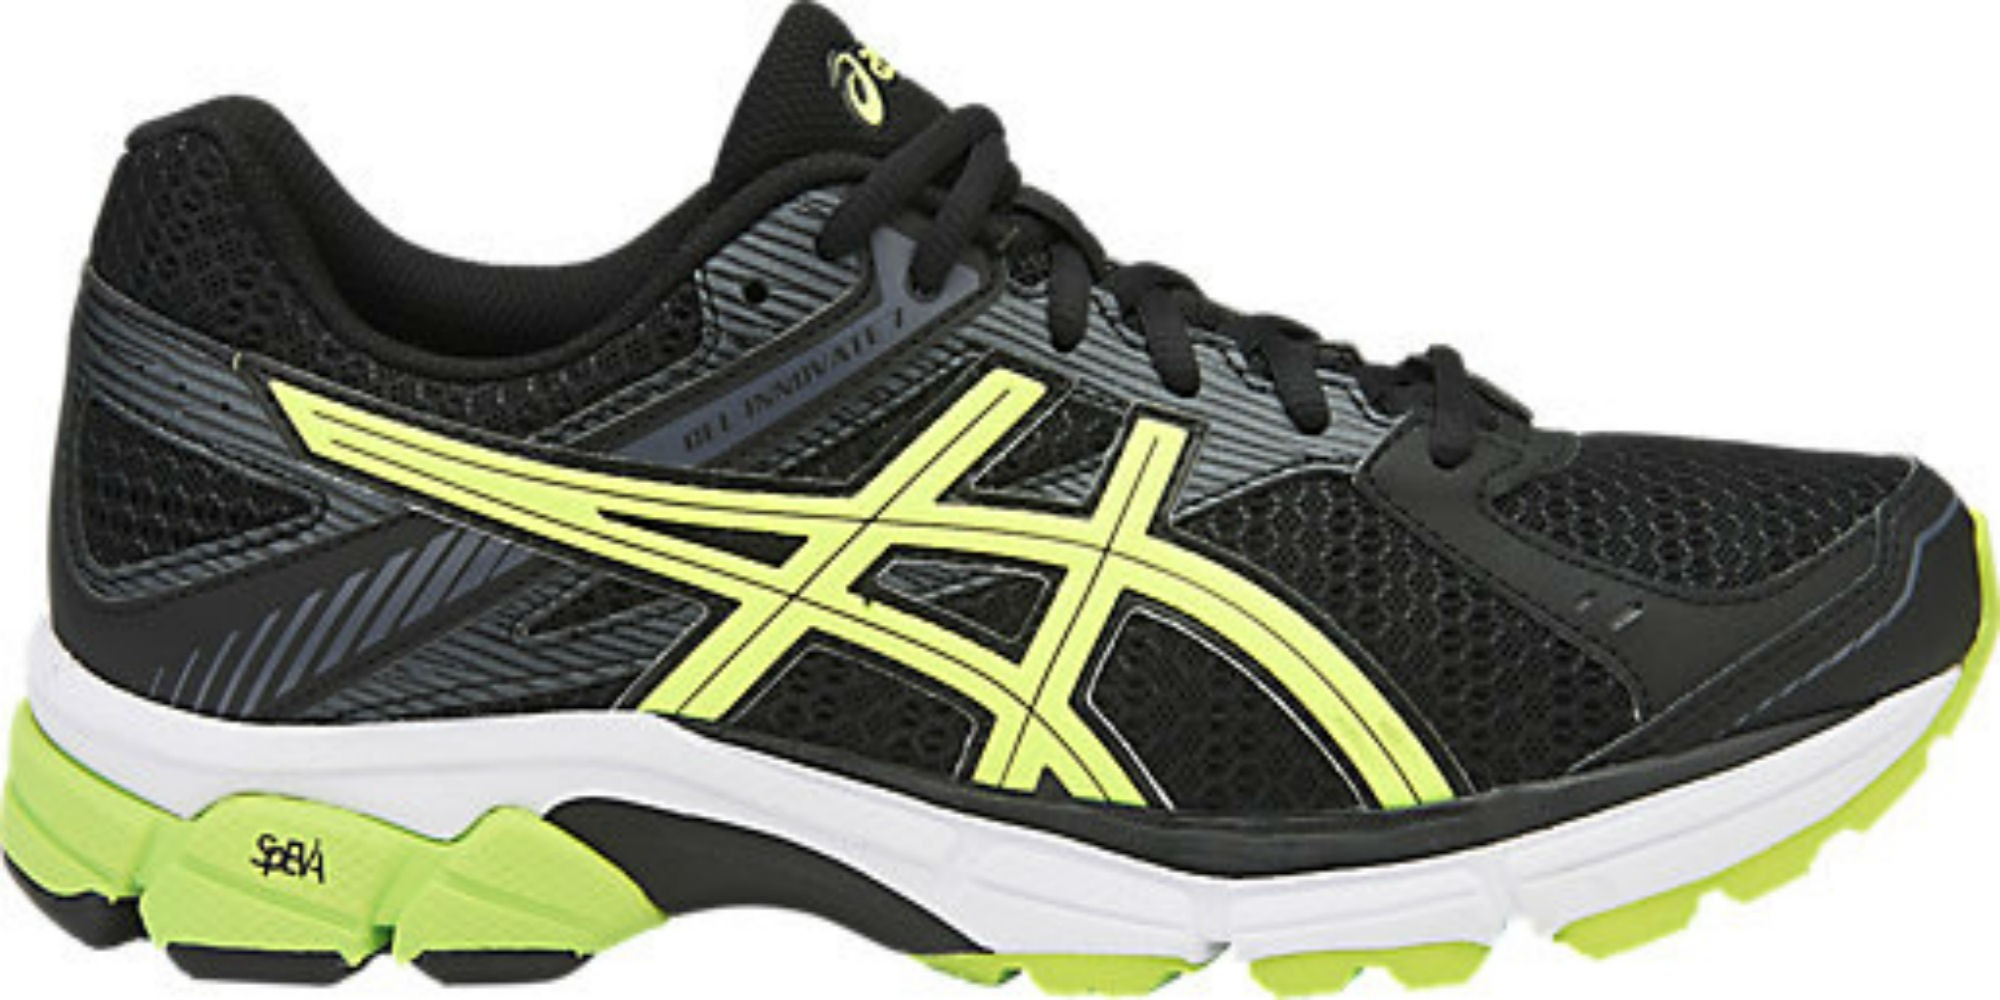 Shop asics gel innovate 7 homme Site Officiel 10986